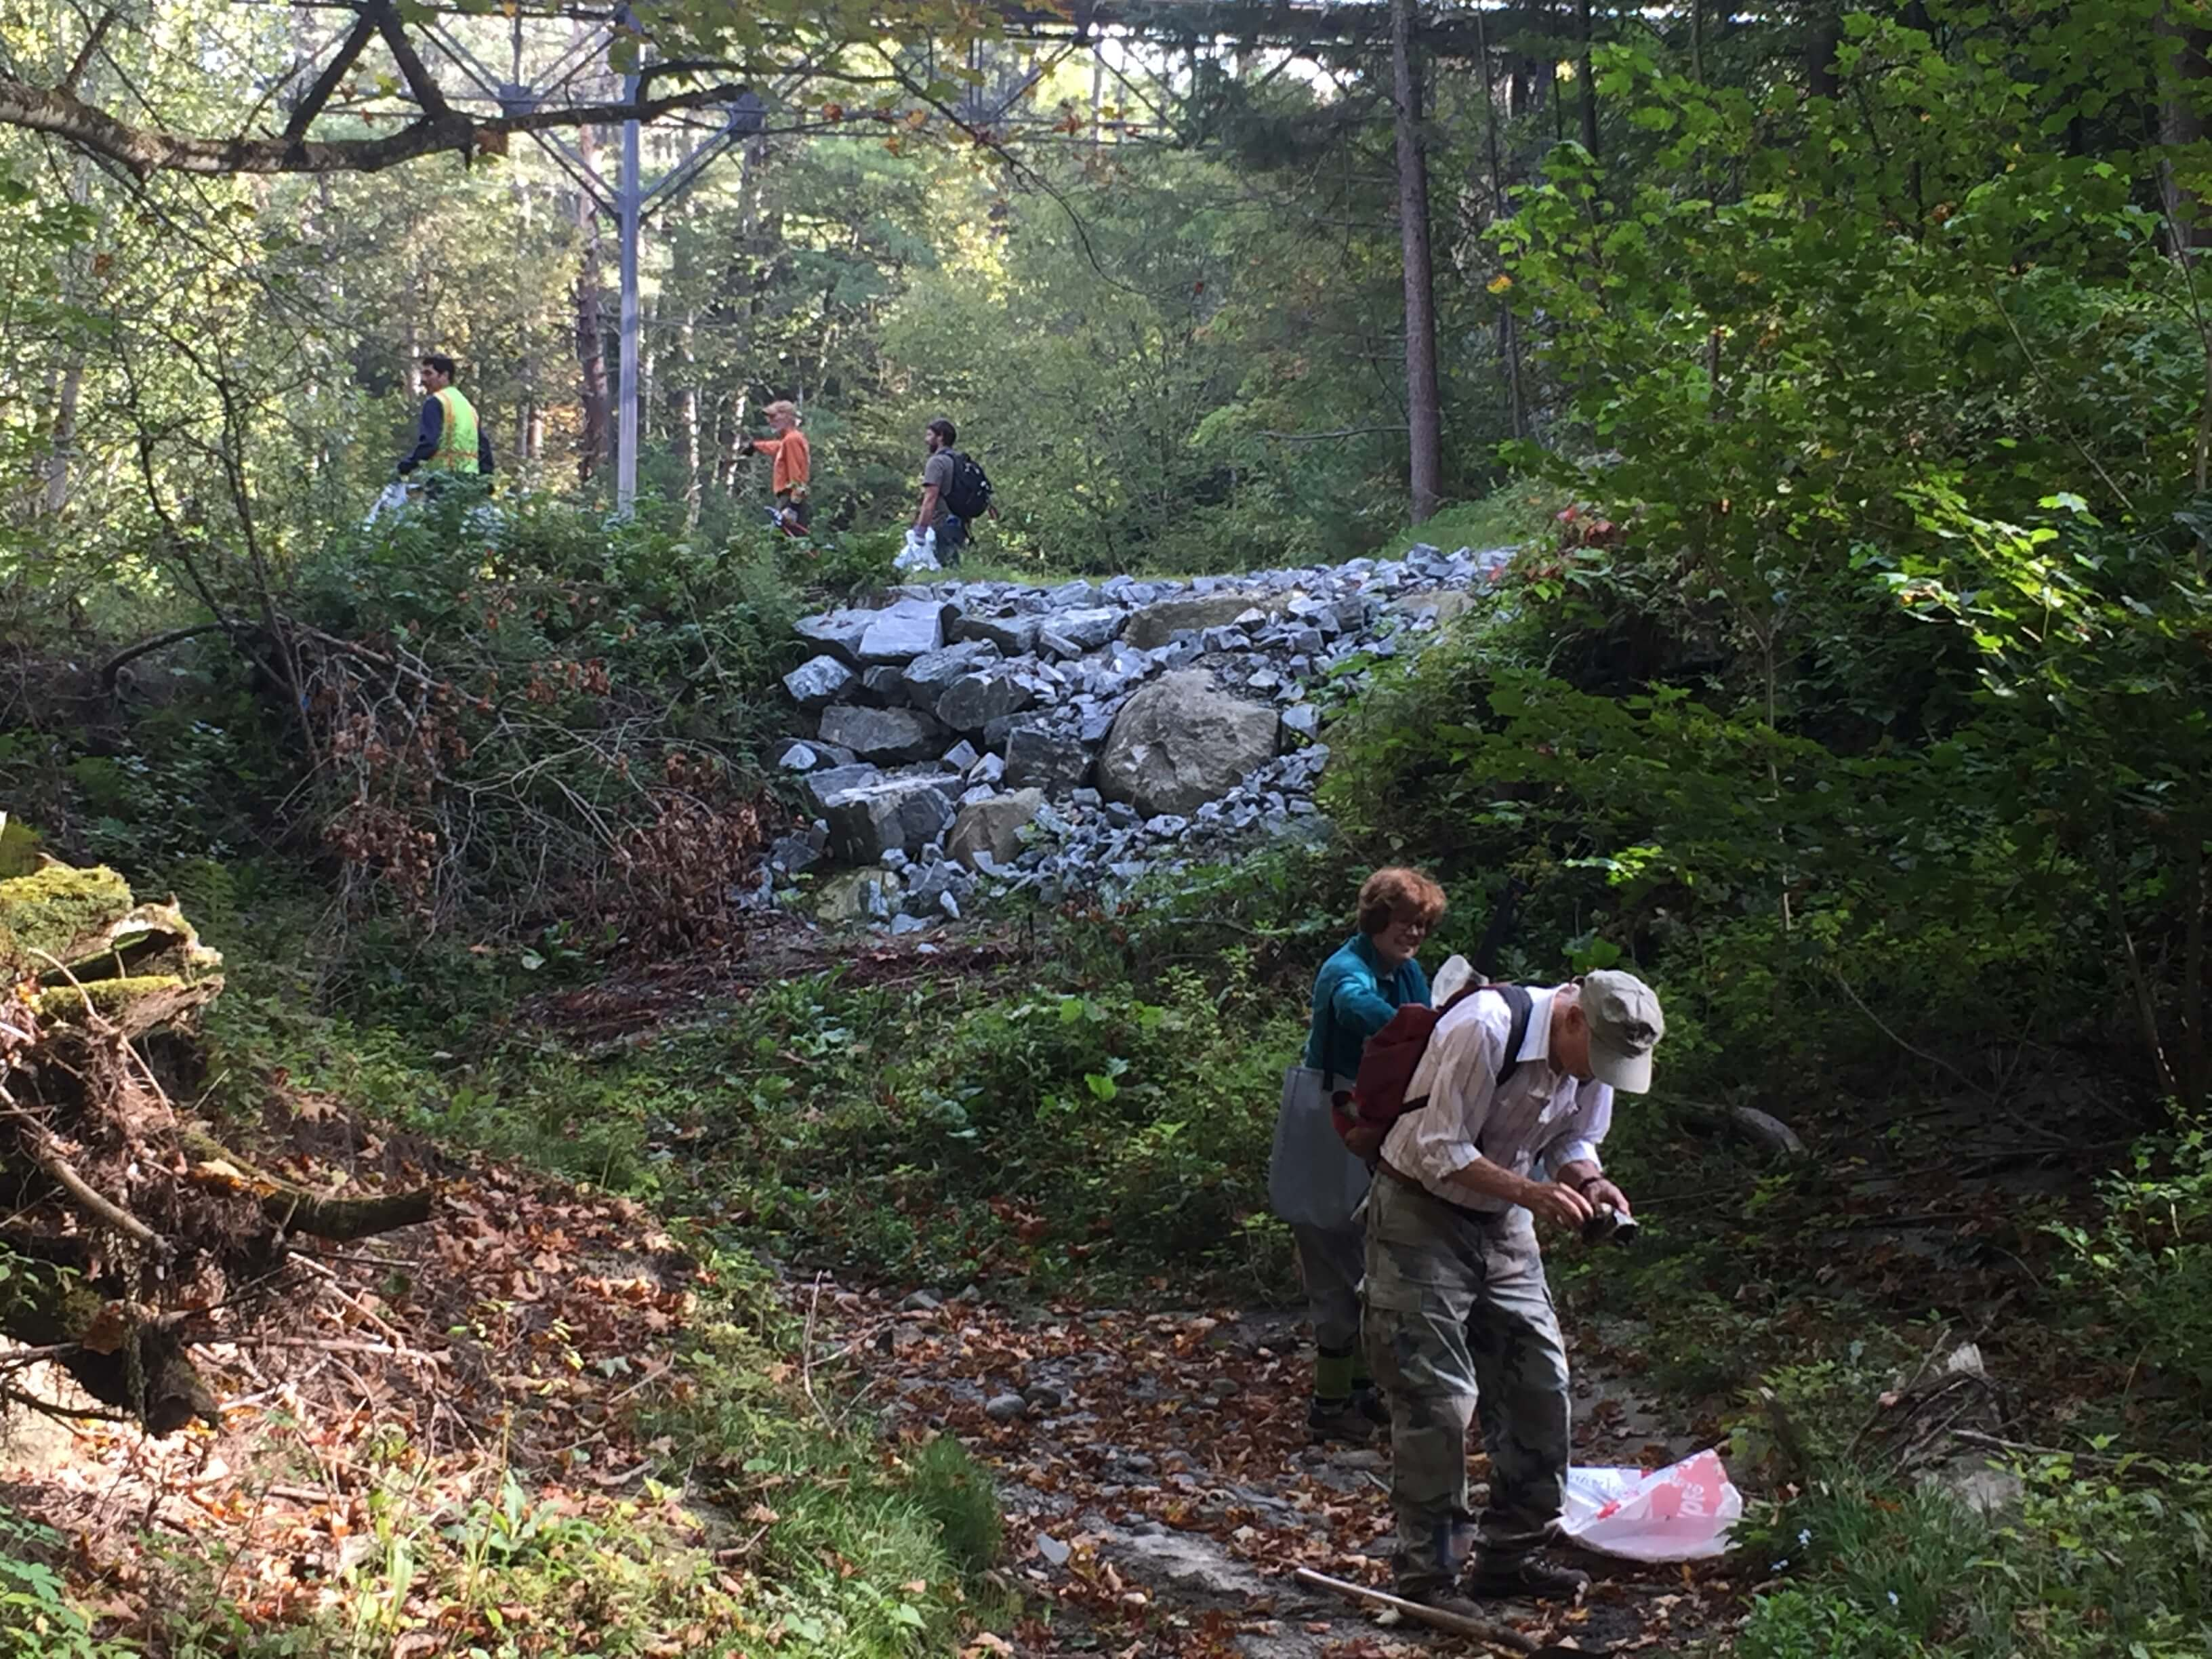 lending a helping hand to nurture nature